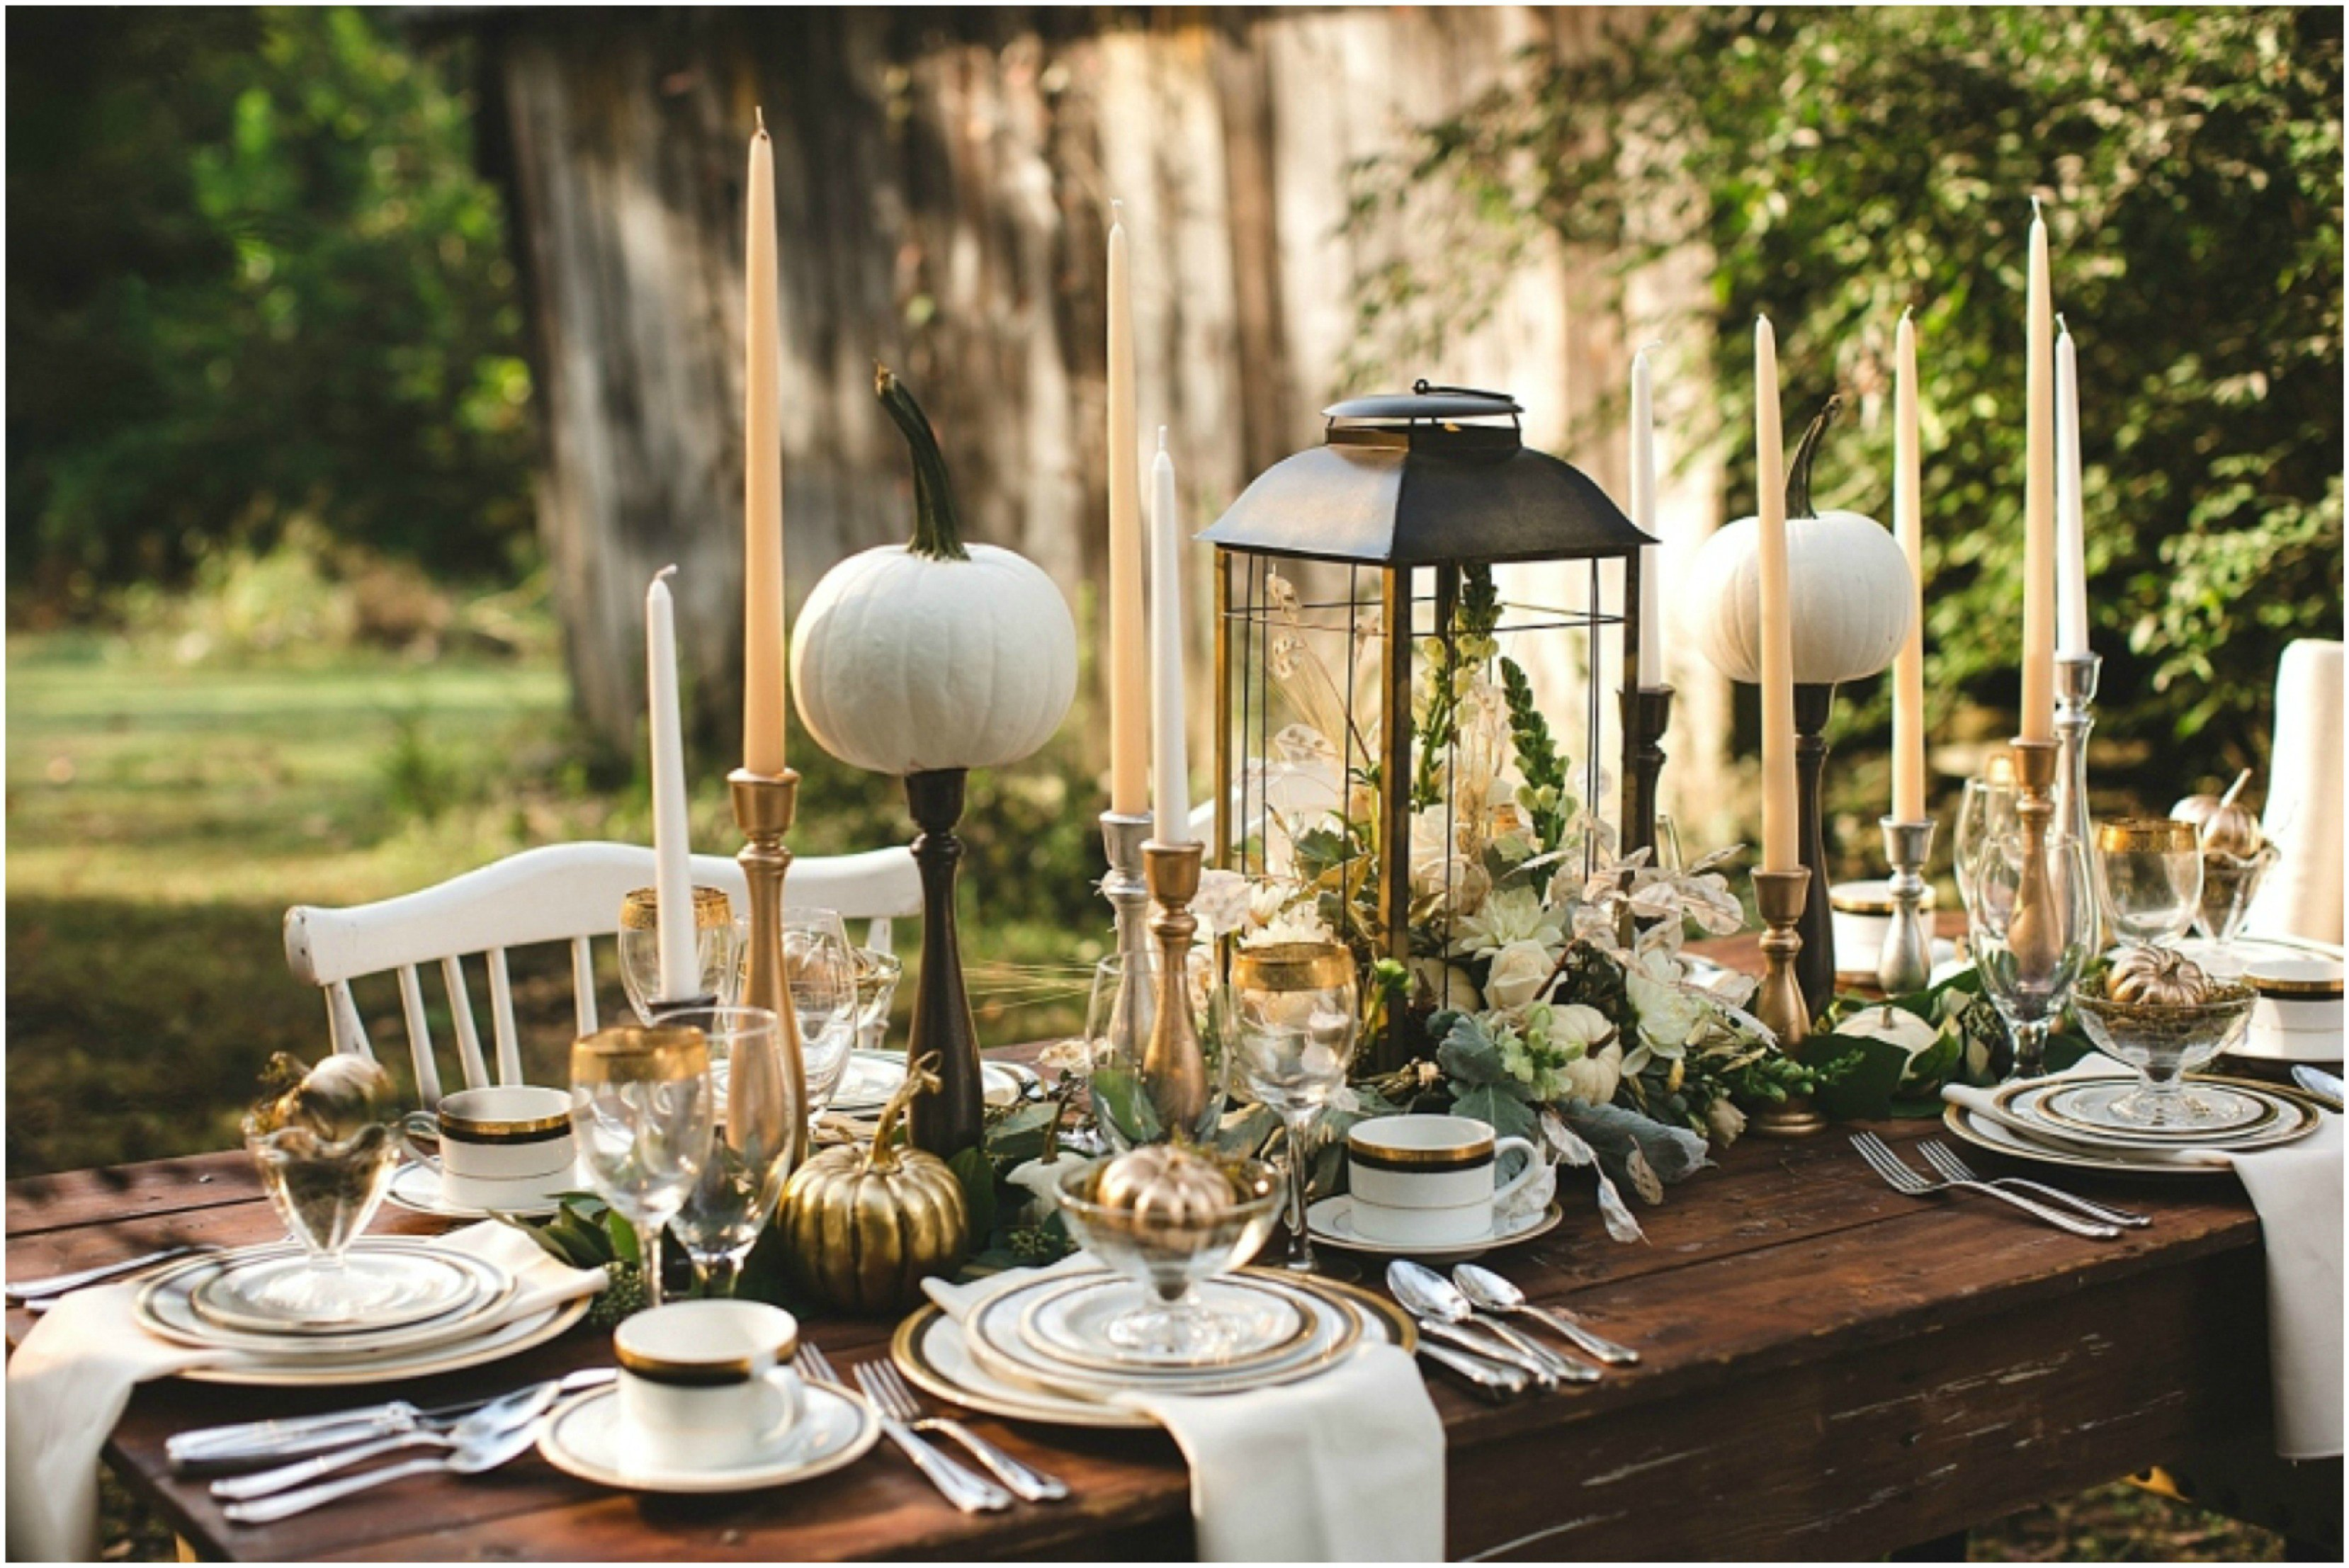 Tablescape Ideas Celebrating Another Year Of Thanksgiving  Interior Design With